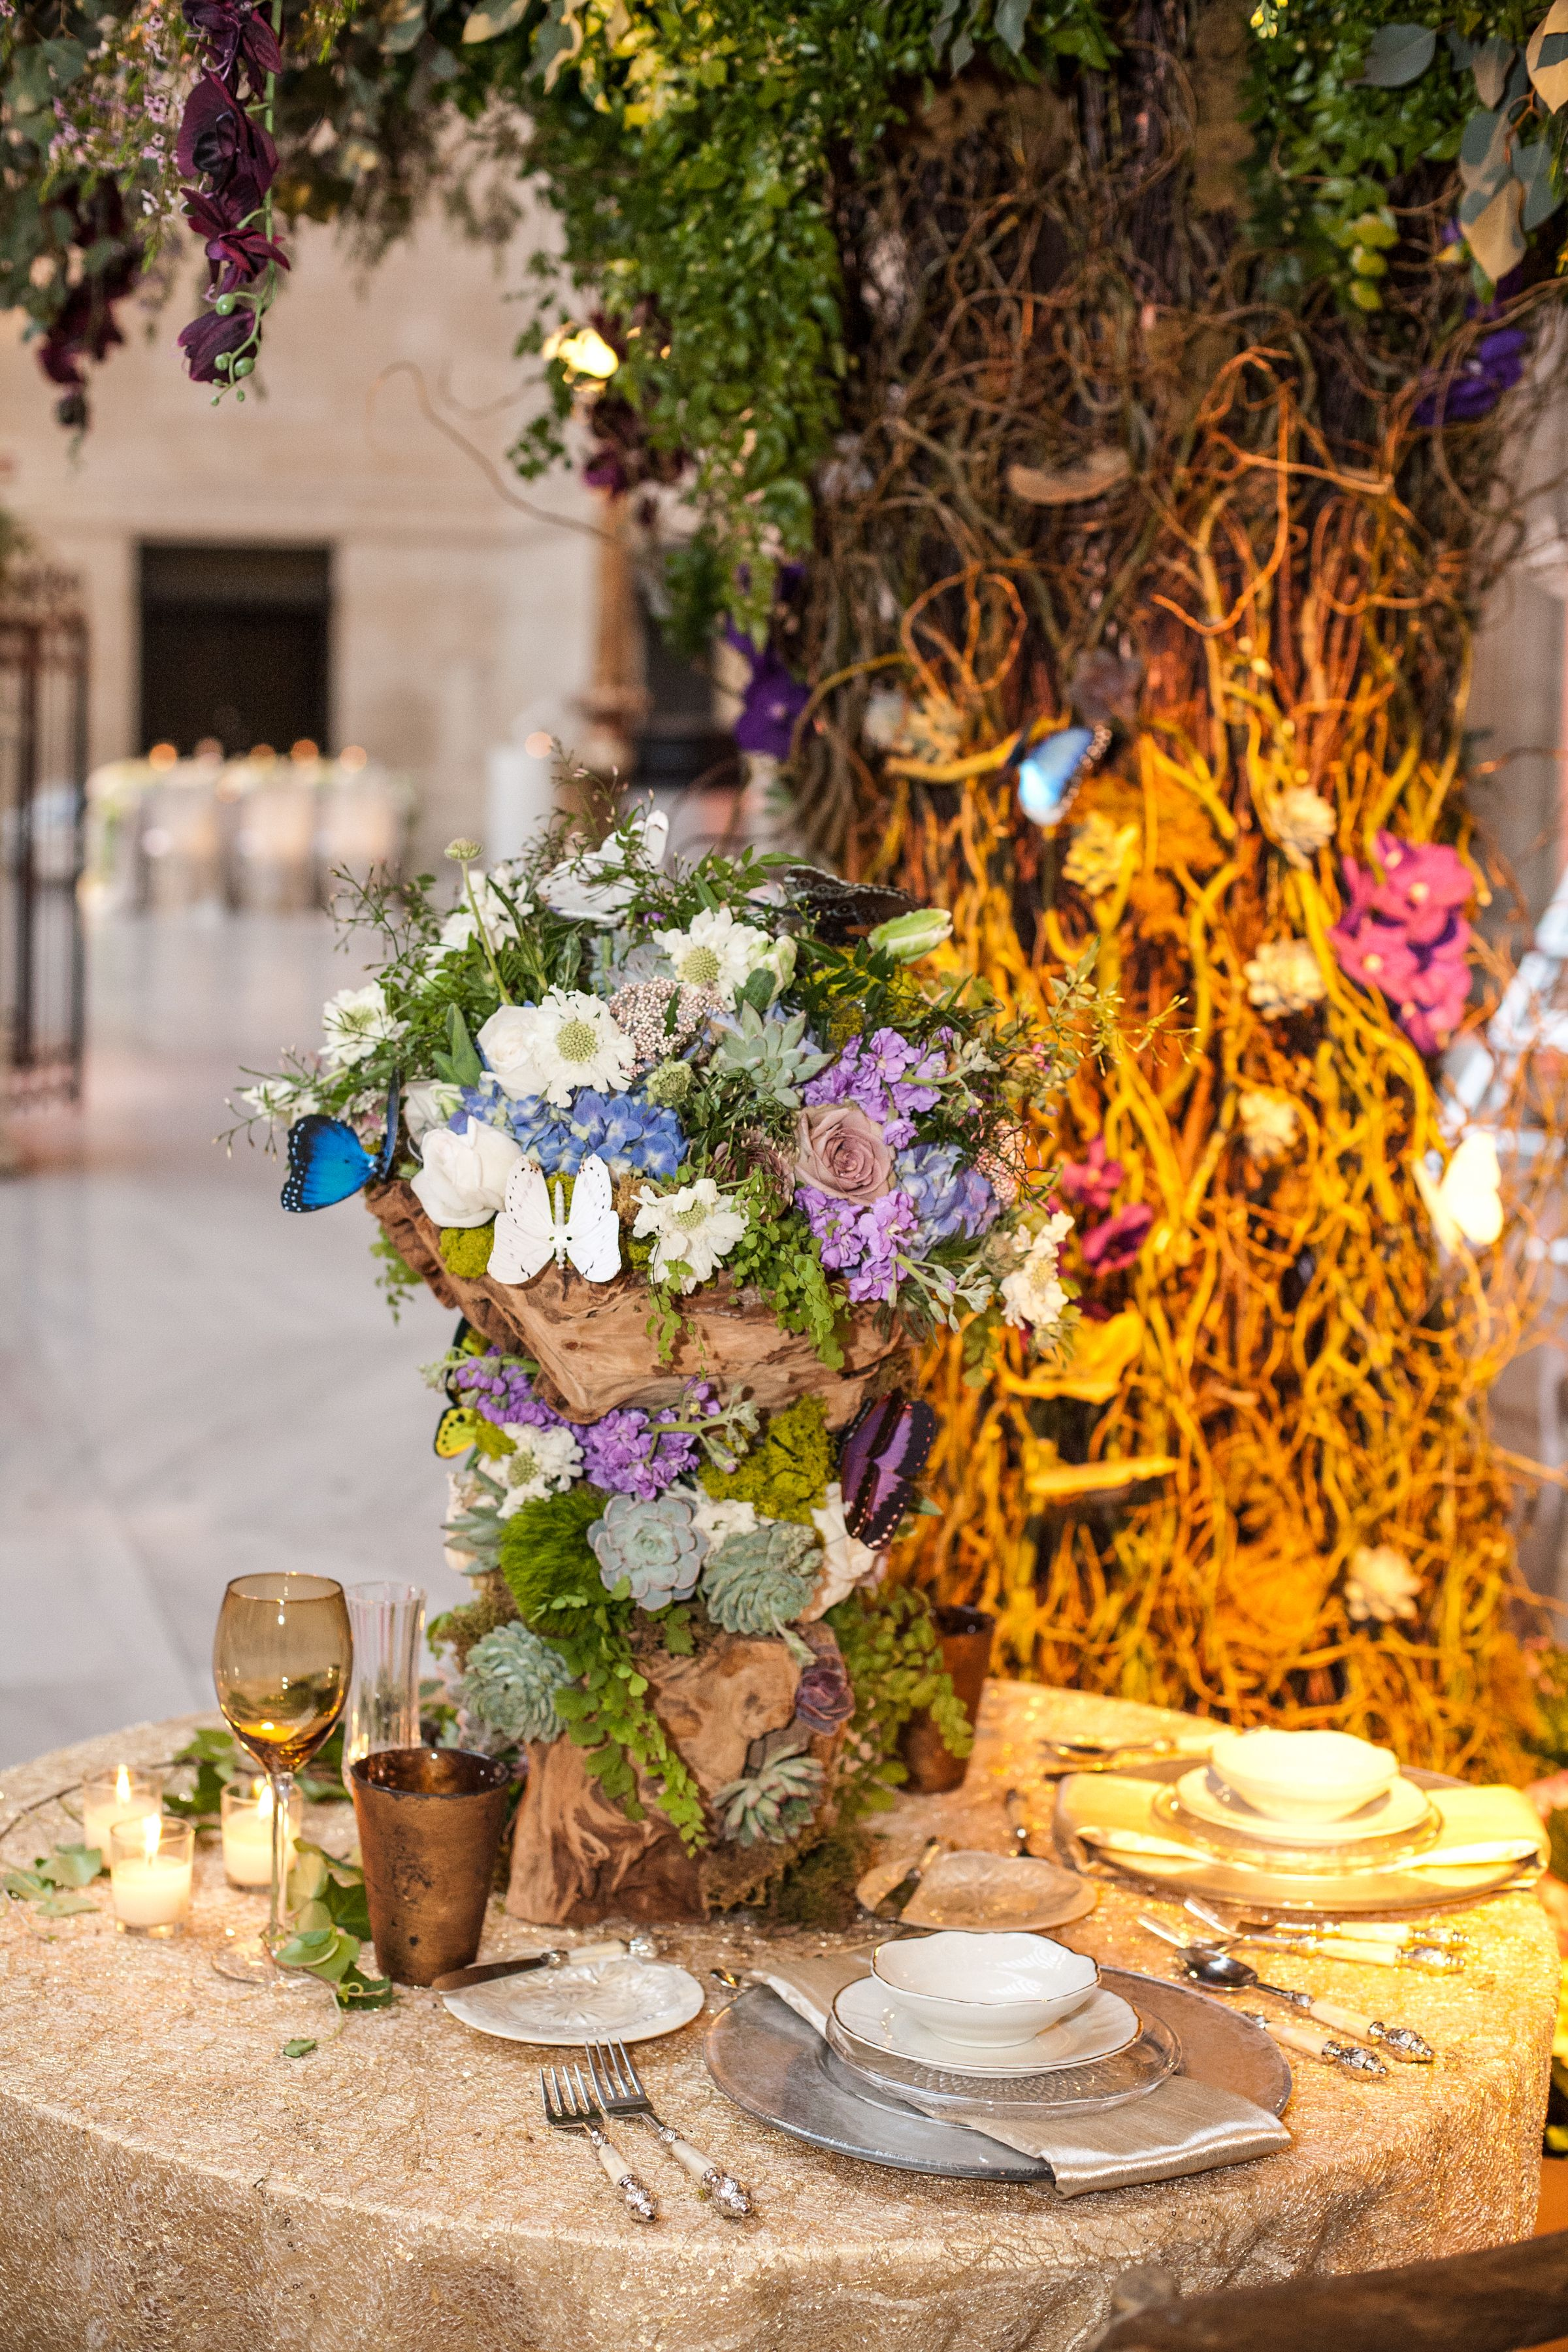 A whimsical centerpiece with animated butterflies on a beautiful gold sequin chain overlay provided by Nuage Linens. Photo by: @Carasco Photography